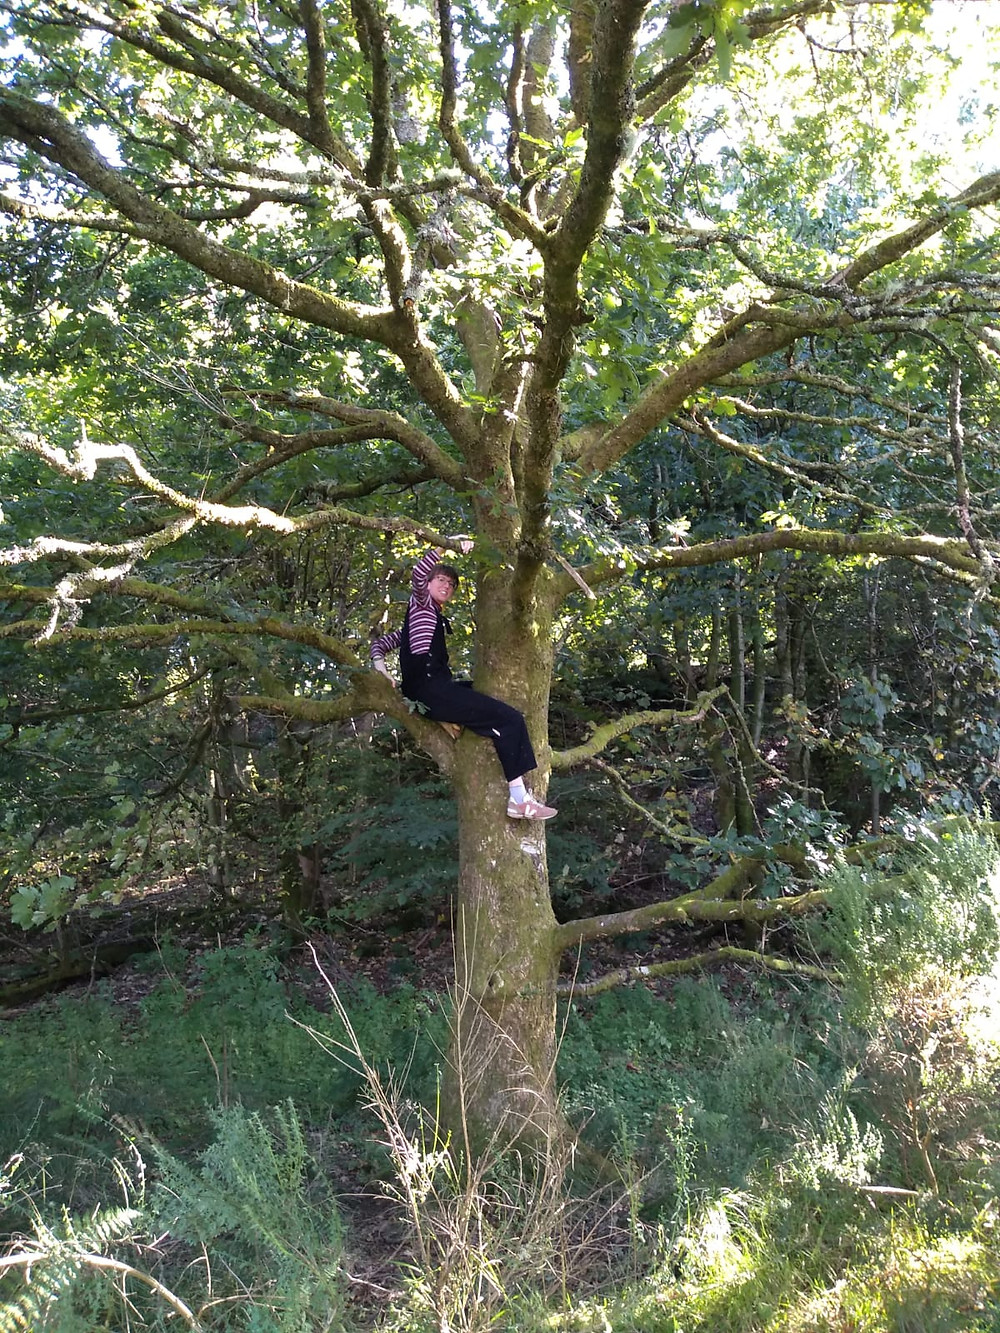 Emily is halfway up a tree, sitting on a branch and smiling at the camera.